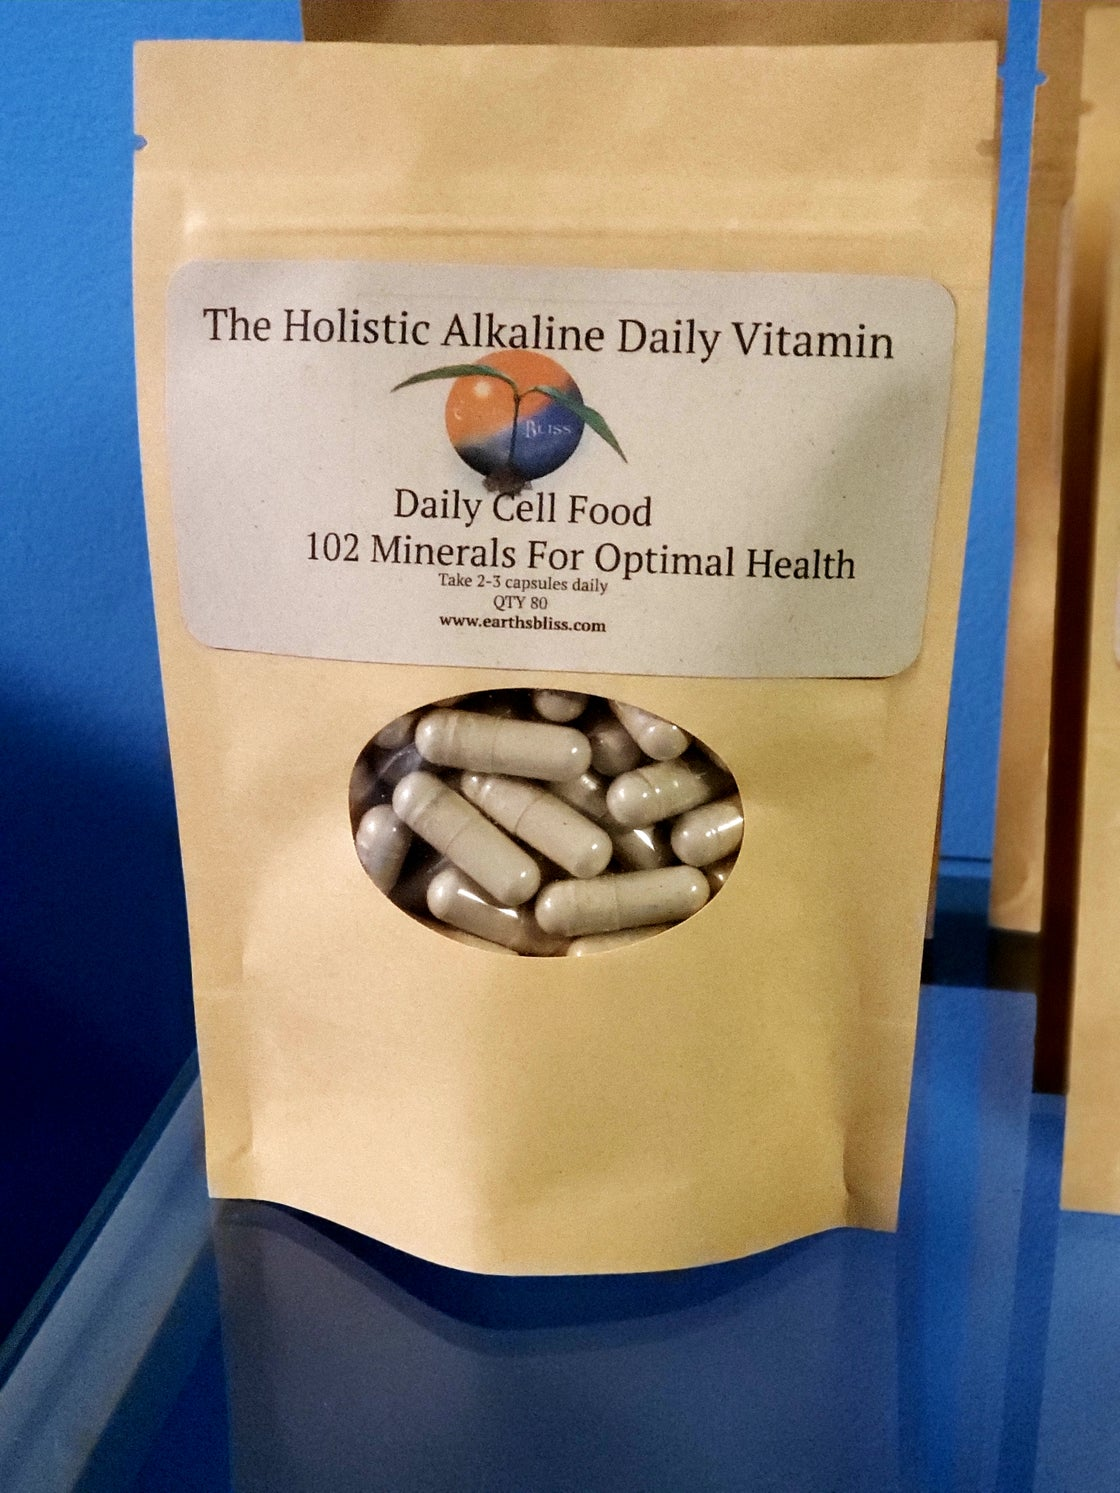 Image of The Holistic Alkaline Daily Vitamin